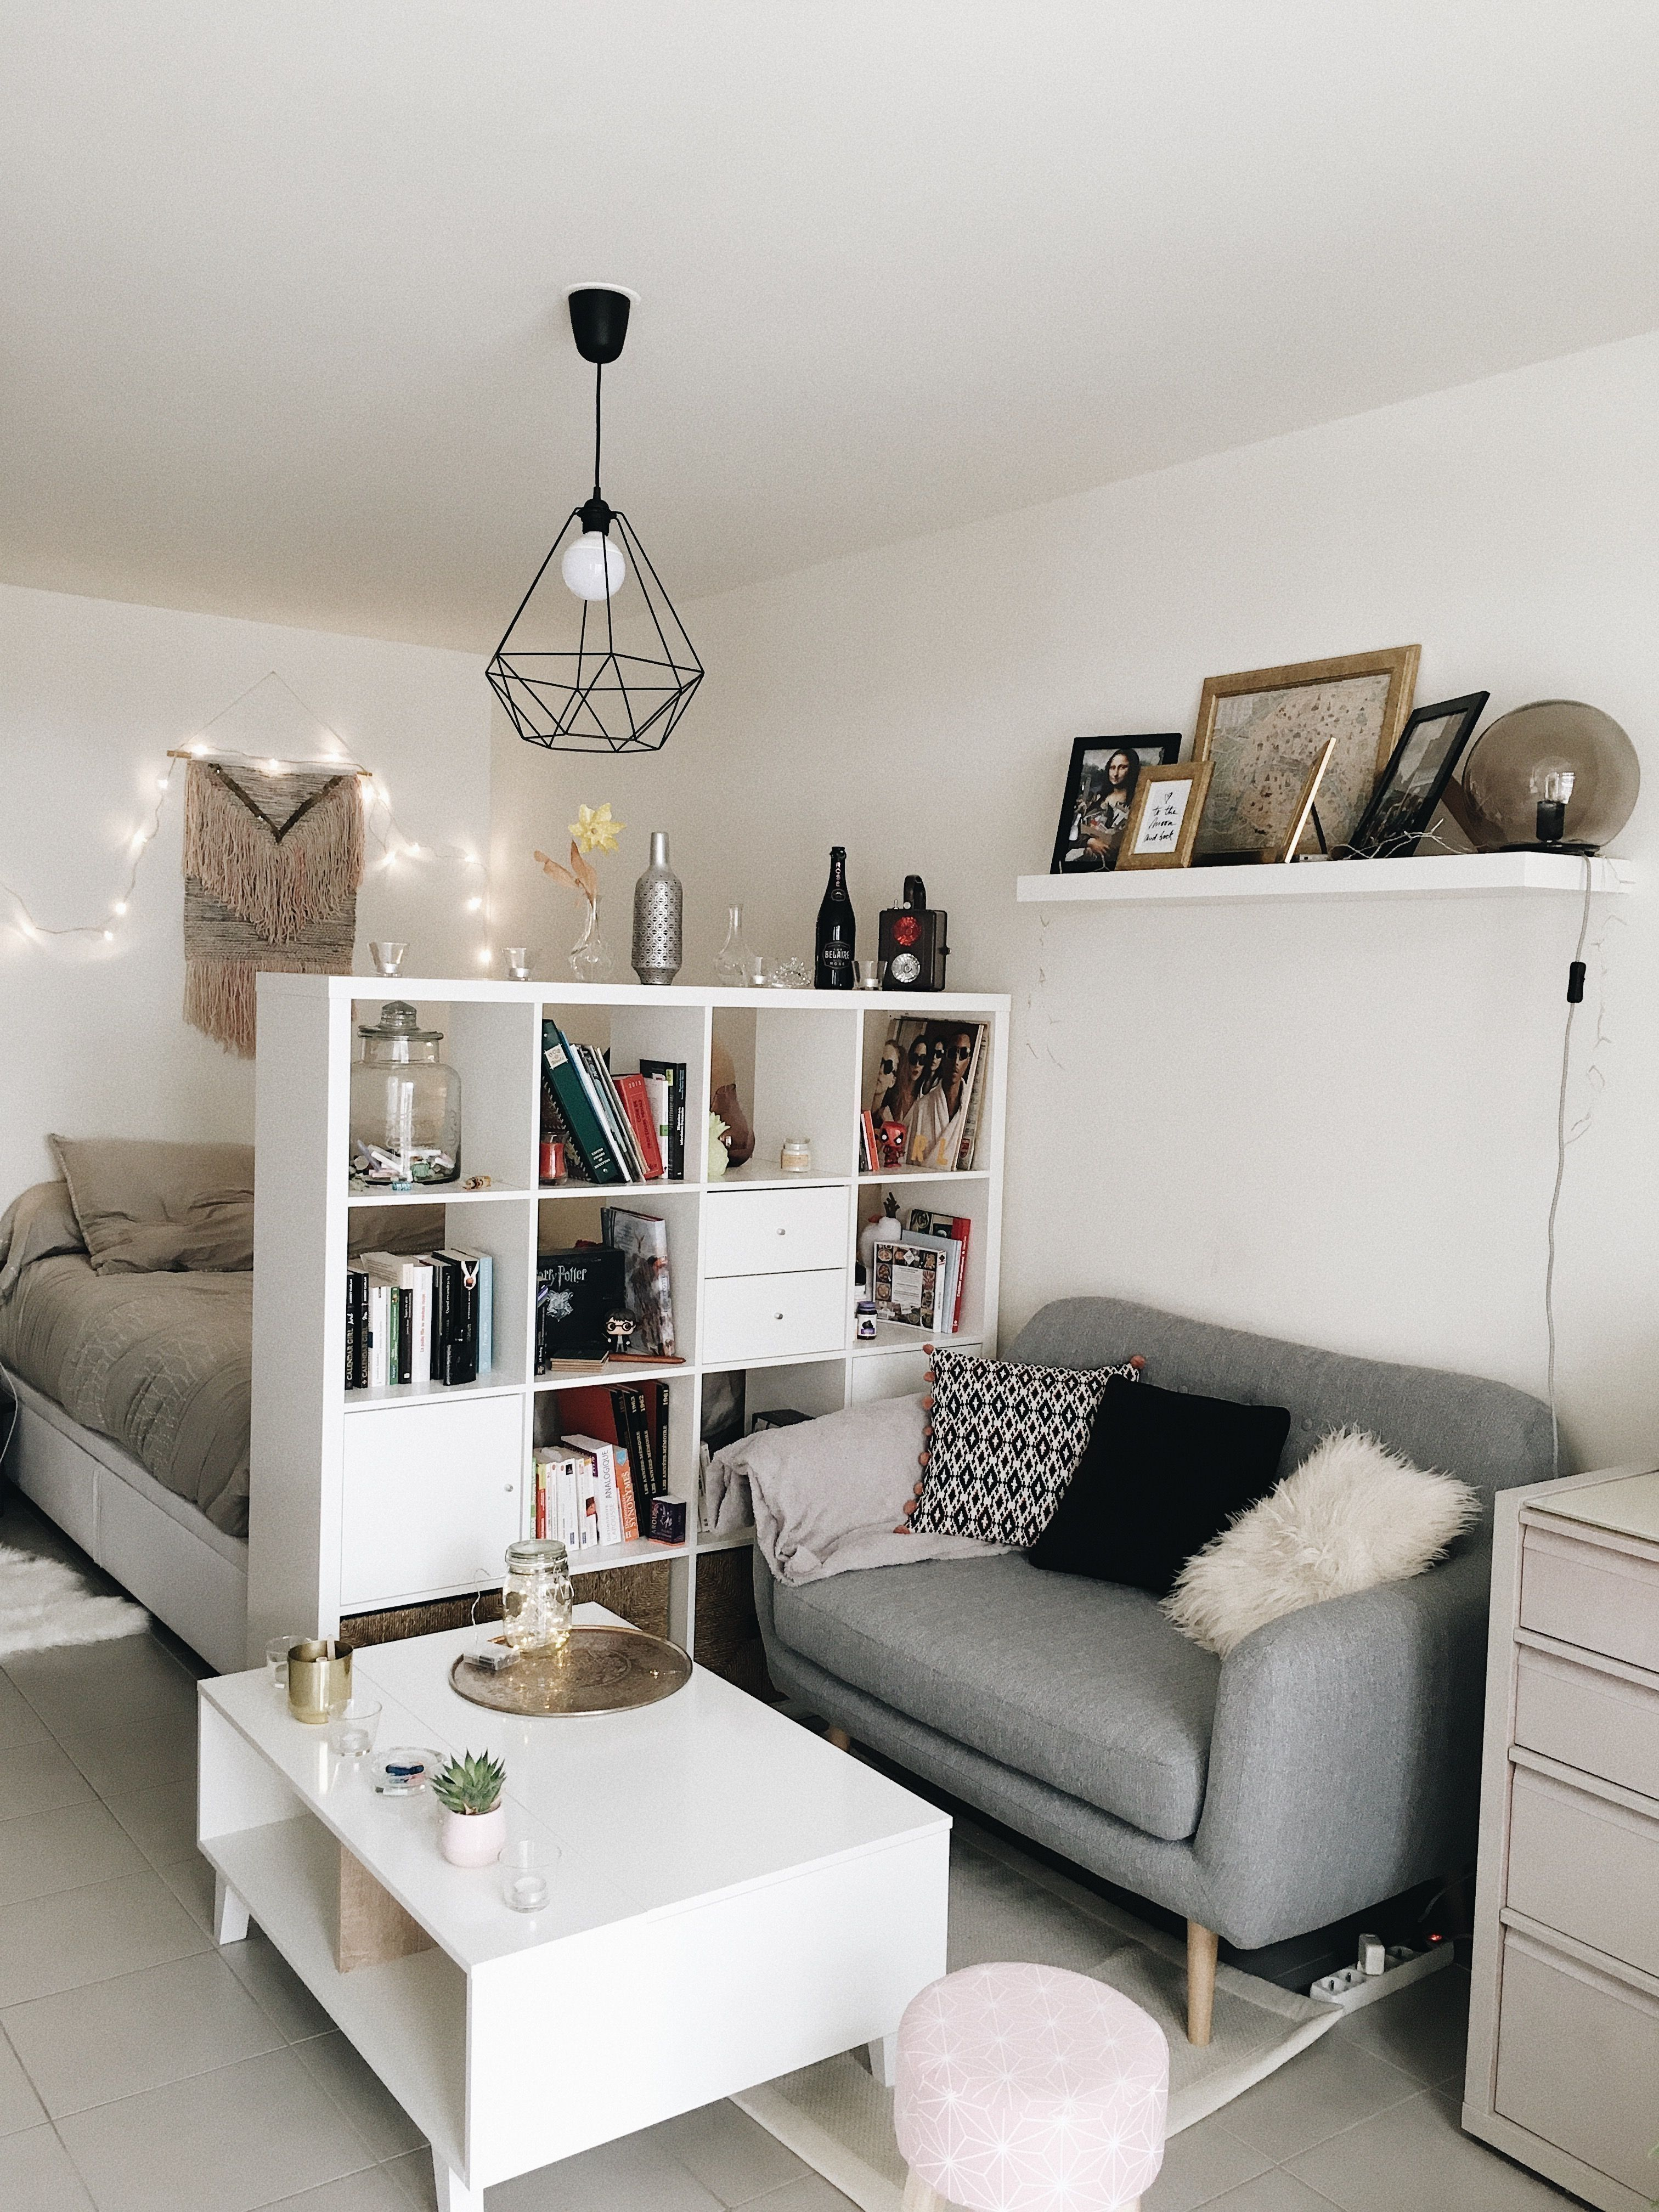 30 Unordinary Minimalist Room Ideas For Inspiration In Your Home Deco Petit Appartement Deco Appartement Decoration Petit Appartement